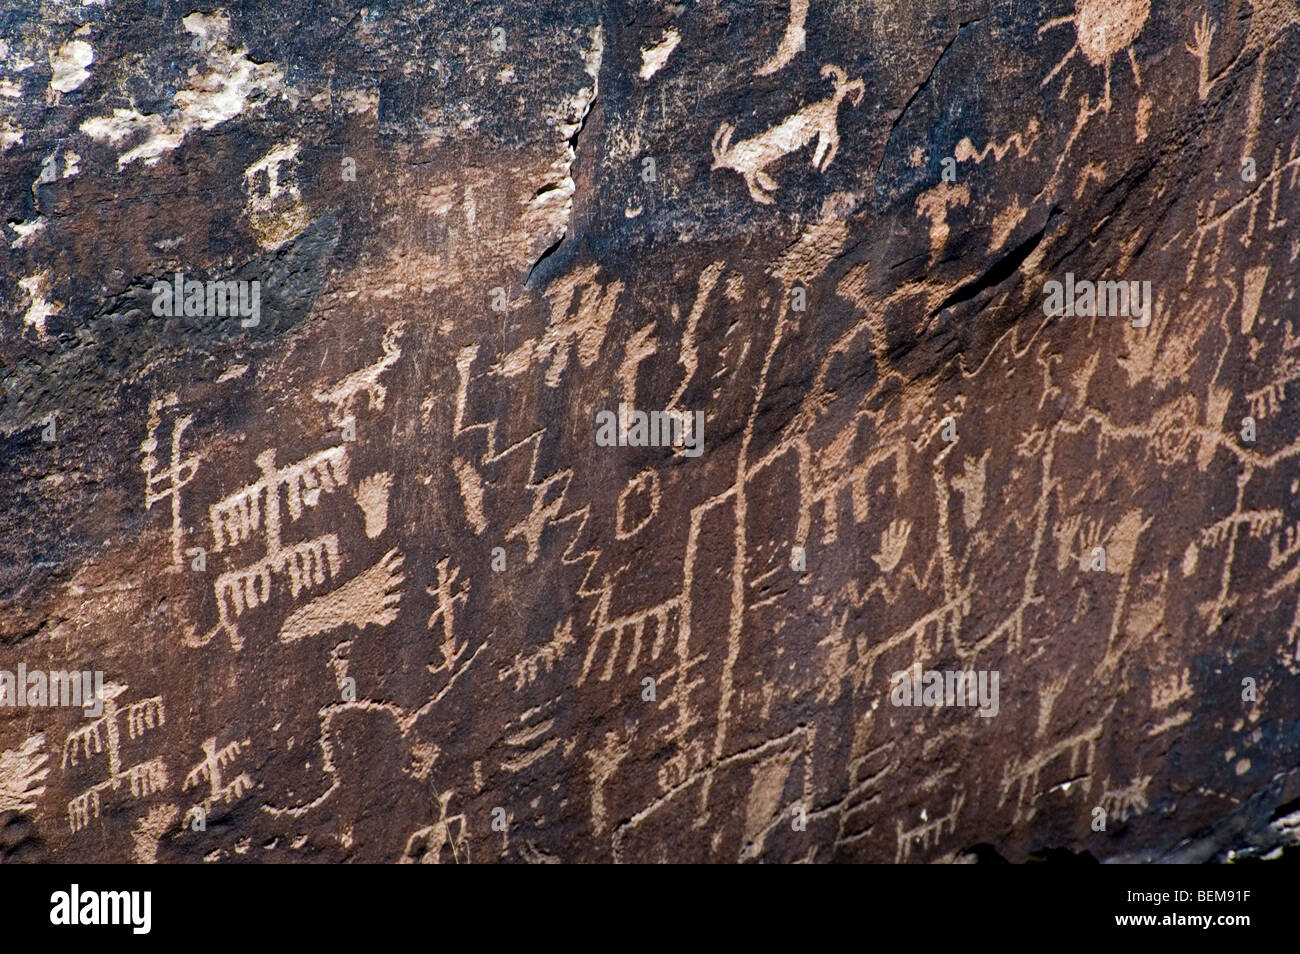 Newspaper Rock showing Anasazi Indian petroglyphs in the Petrified Forest National Park, Arizona, US - Stock Image